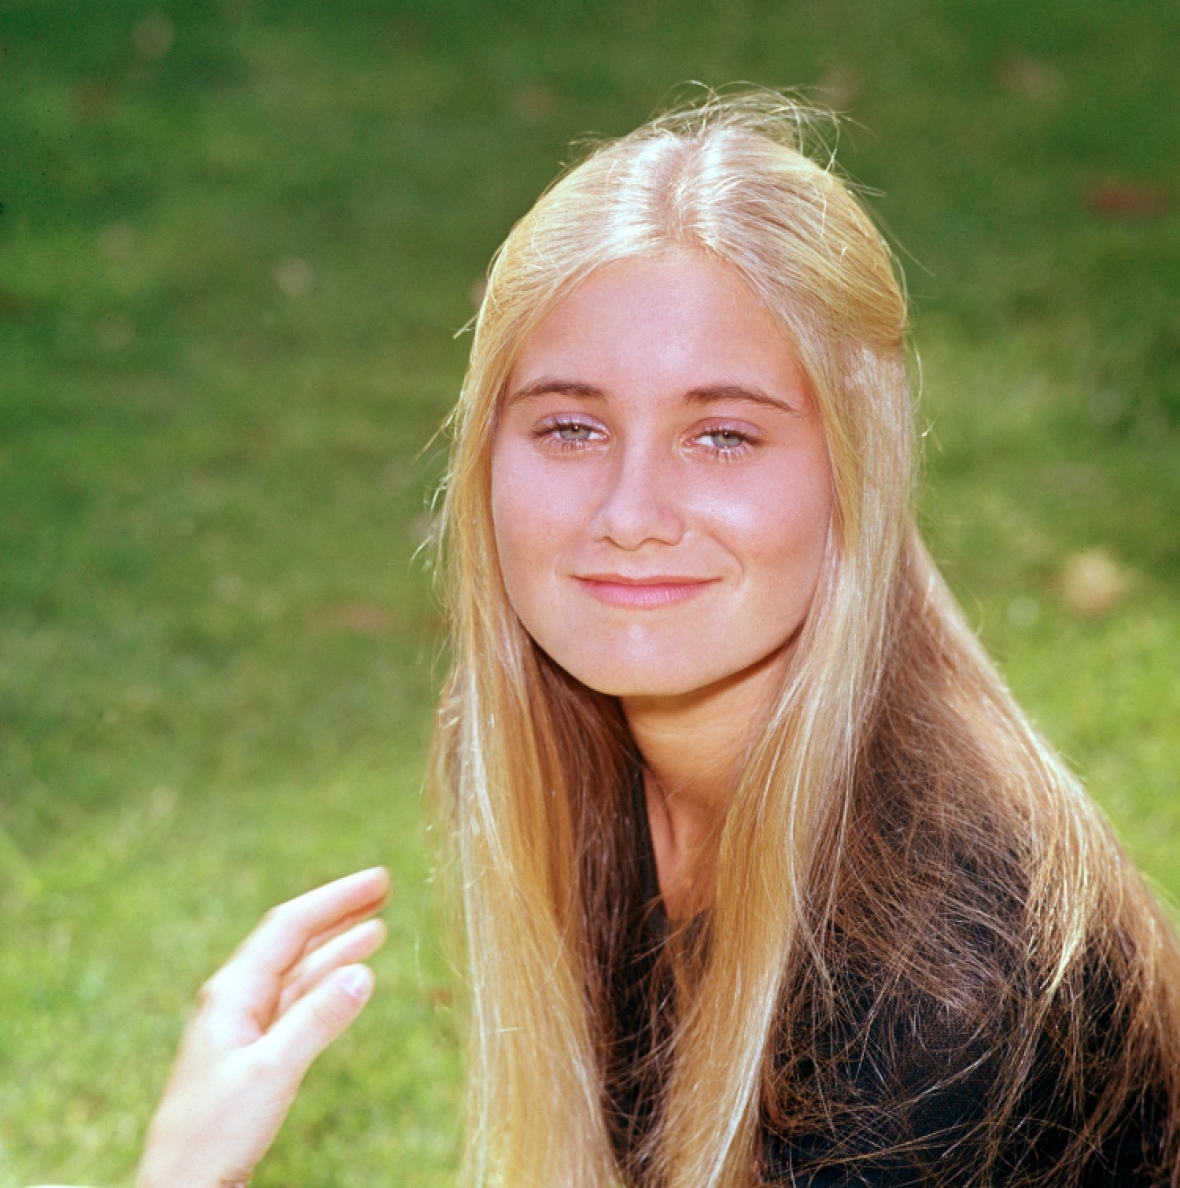 maureen mccormick getty images